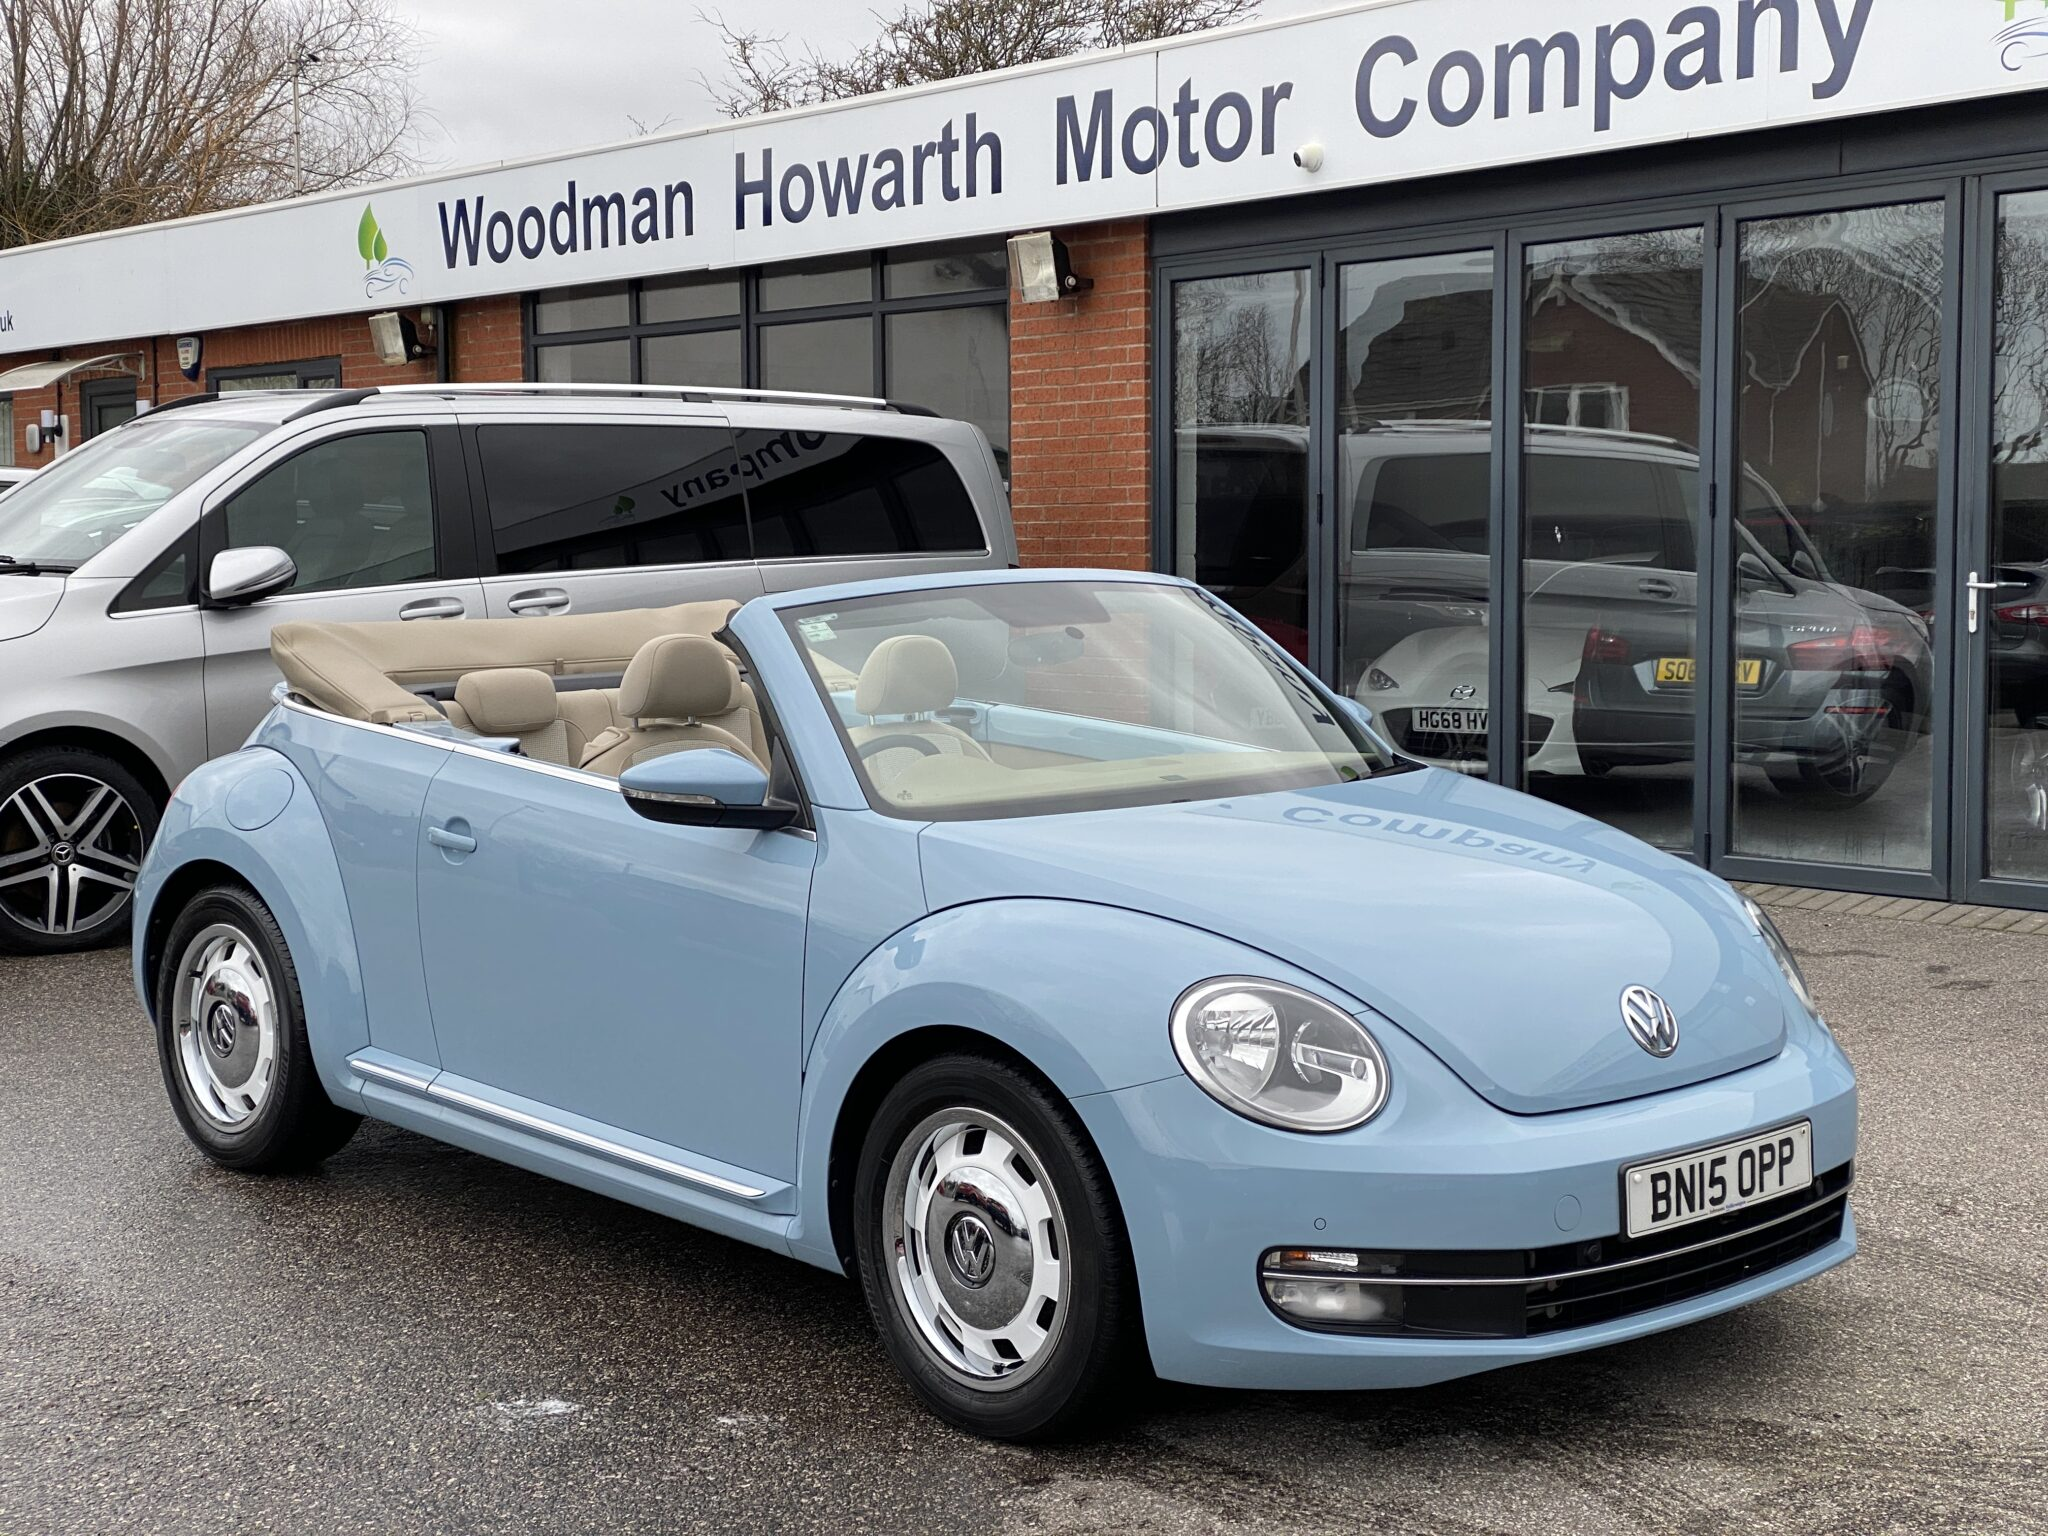 2015 15 VOLKSWAGEN BEETLE 2.0 TDI 150 DESIGN CONVERTIBLE MANUAL Only 12k Mls Stunning Example rare Car